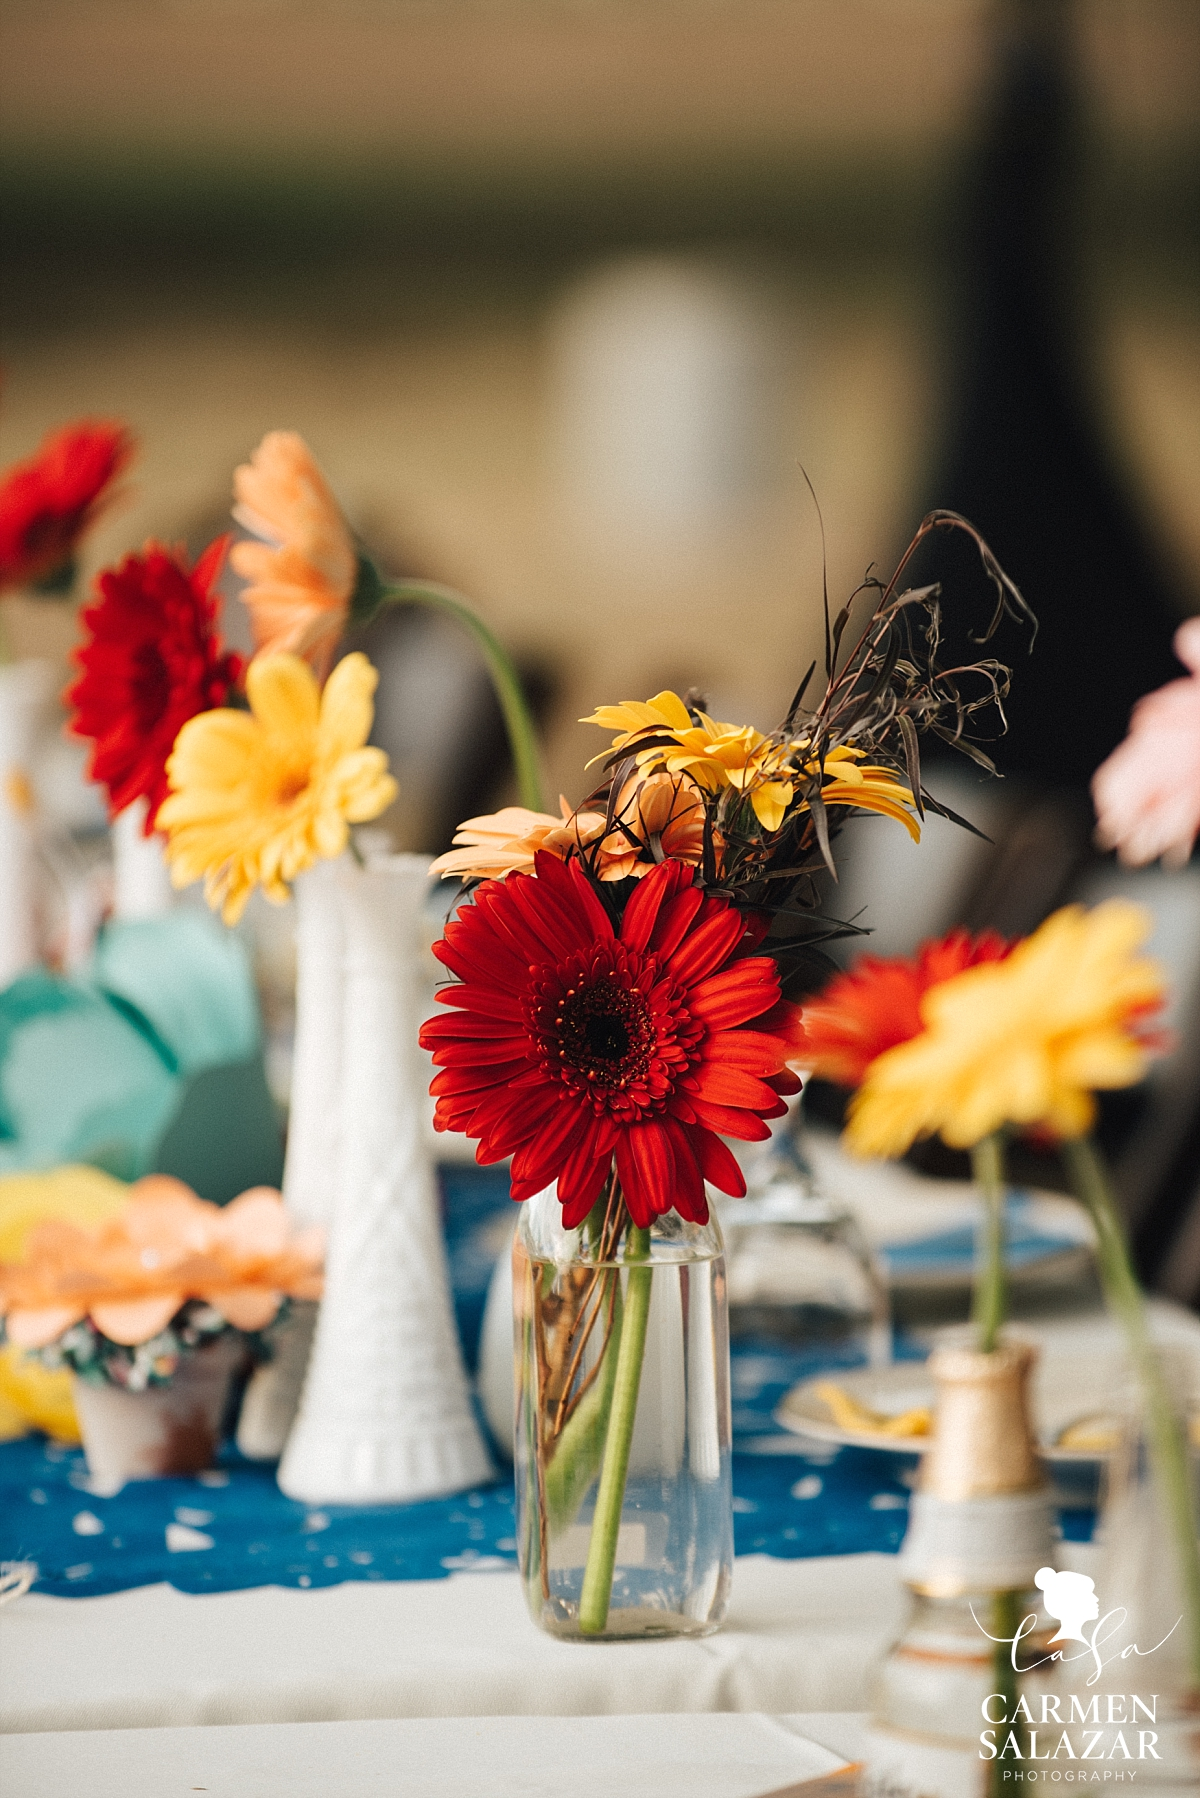 Fall wedding floral centerpieces at Mexican wedding - Carmen Salazar